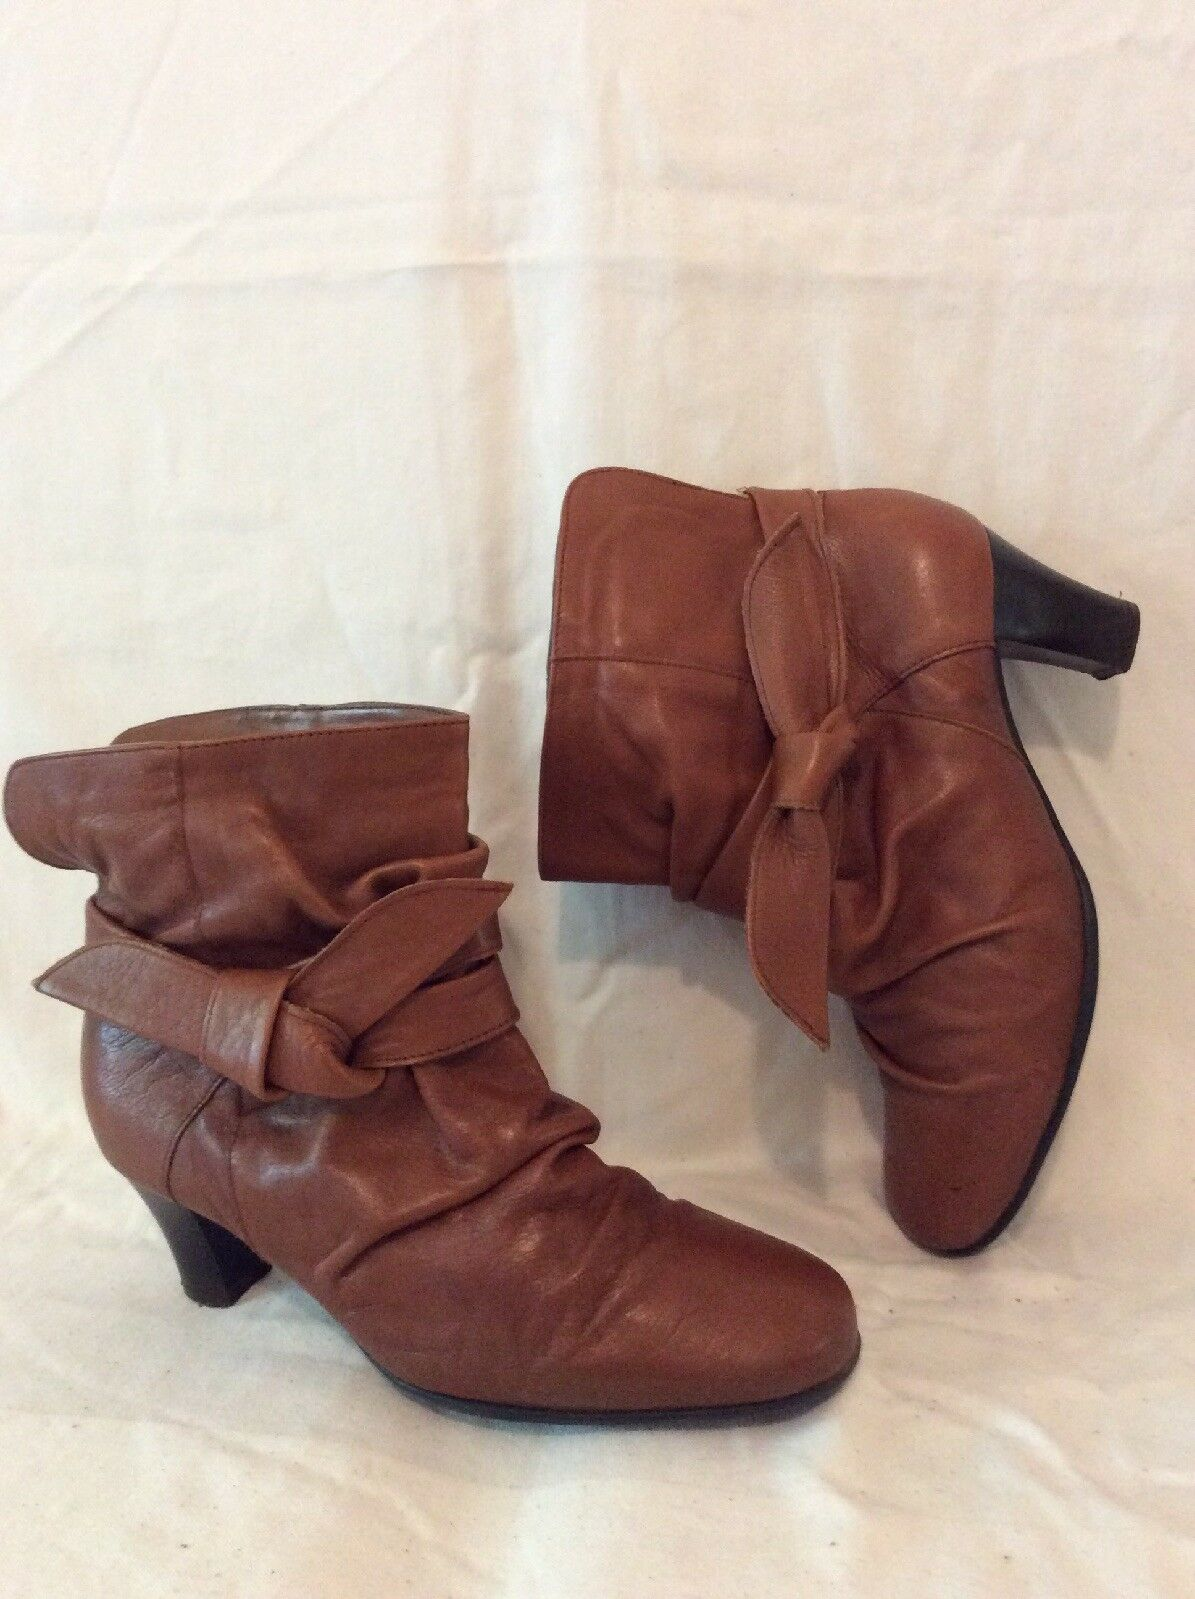 Froggie Brown Ankle Leather Boots Size 5.5